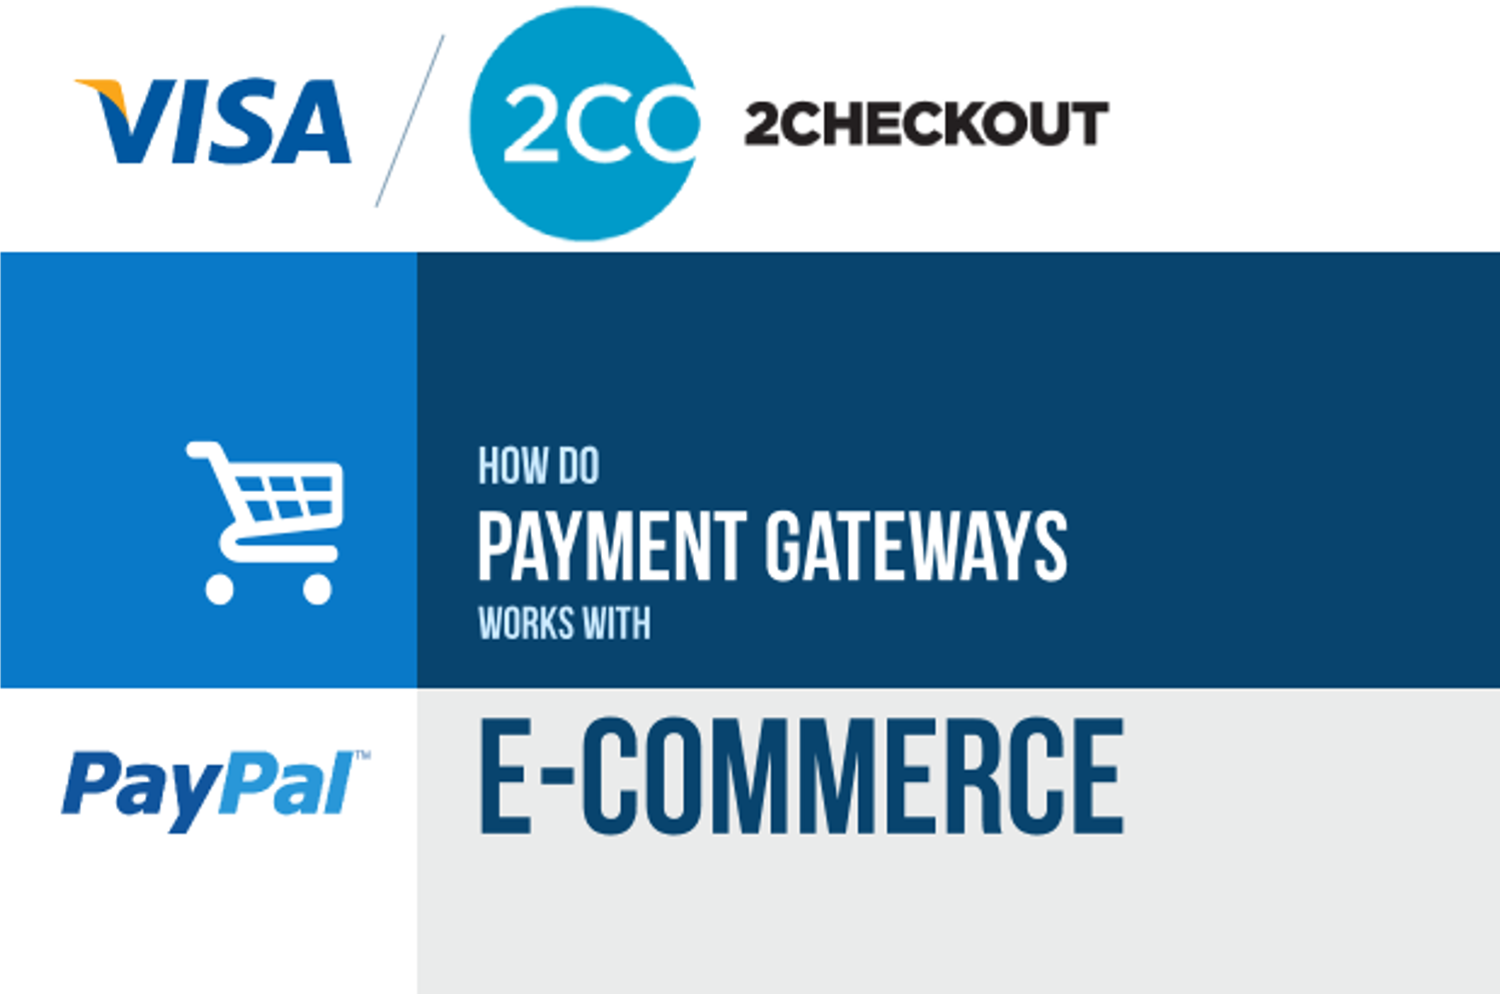 E-Commerce, including payment gateway